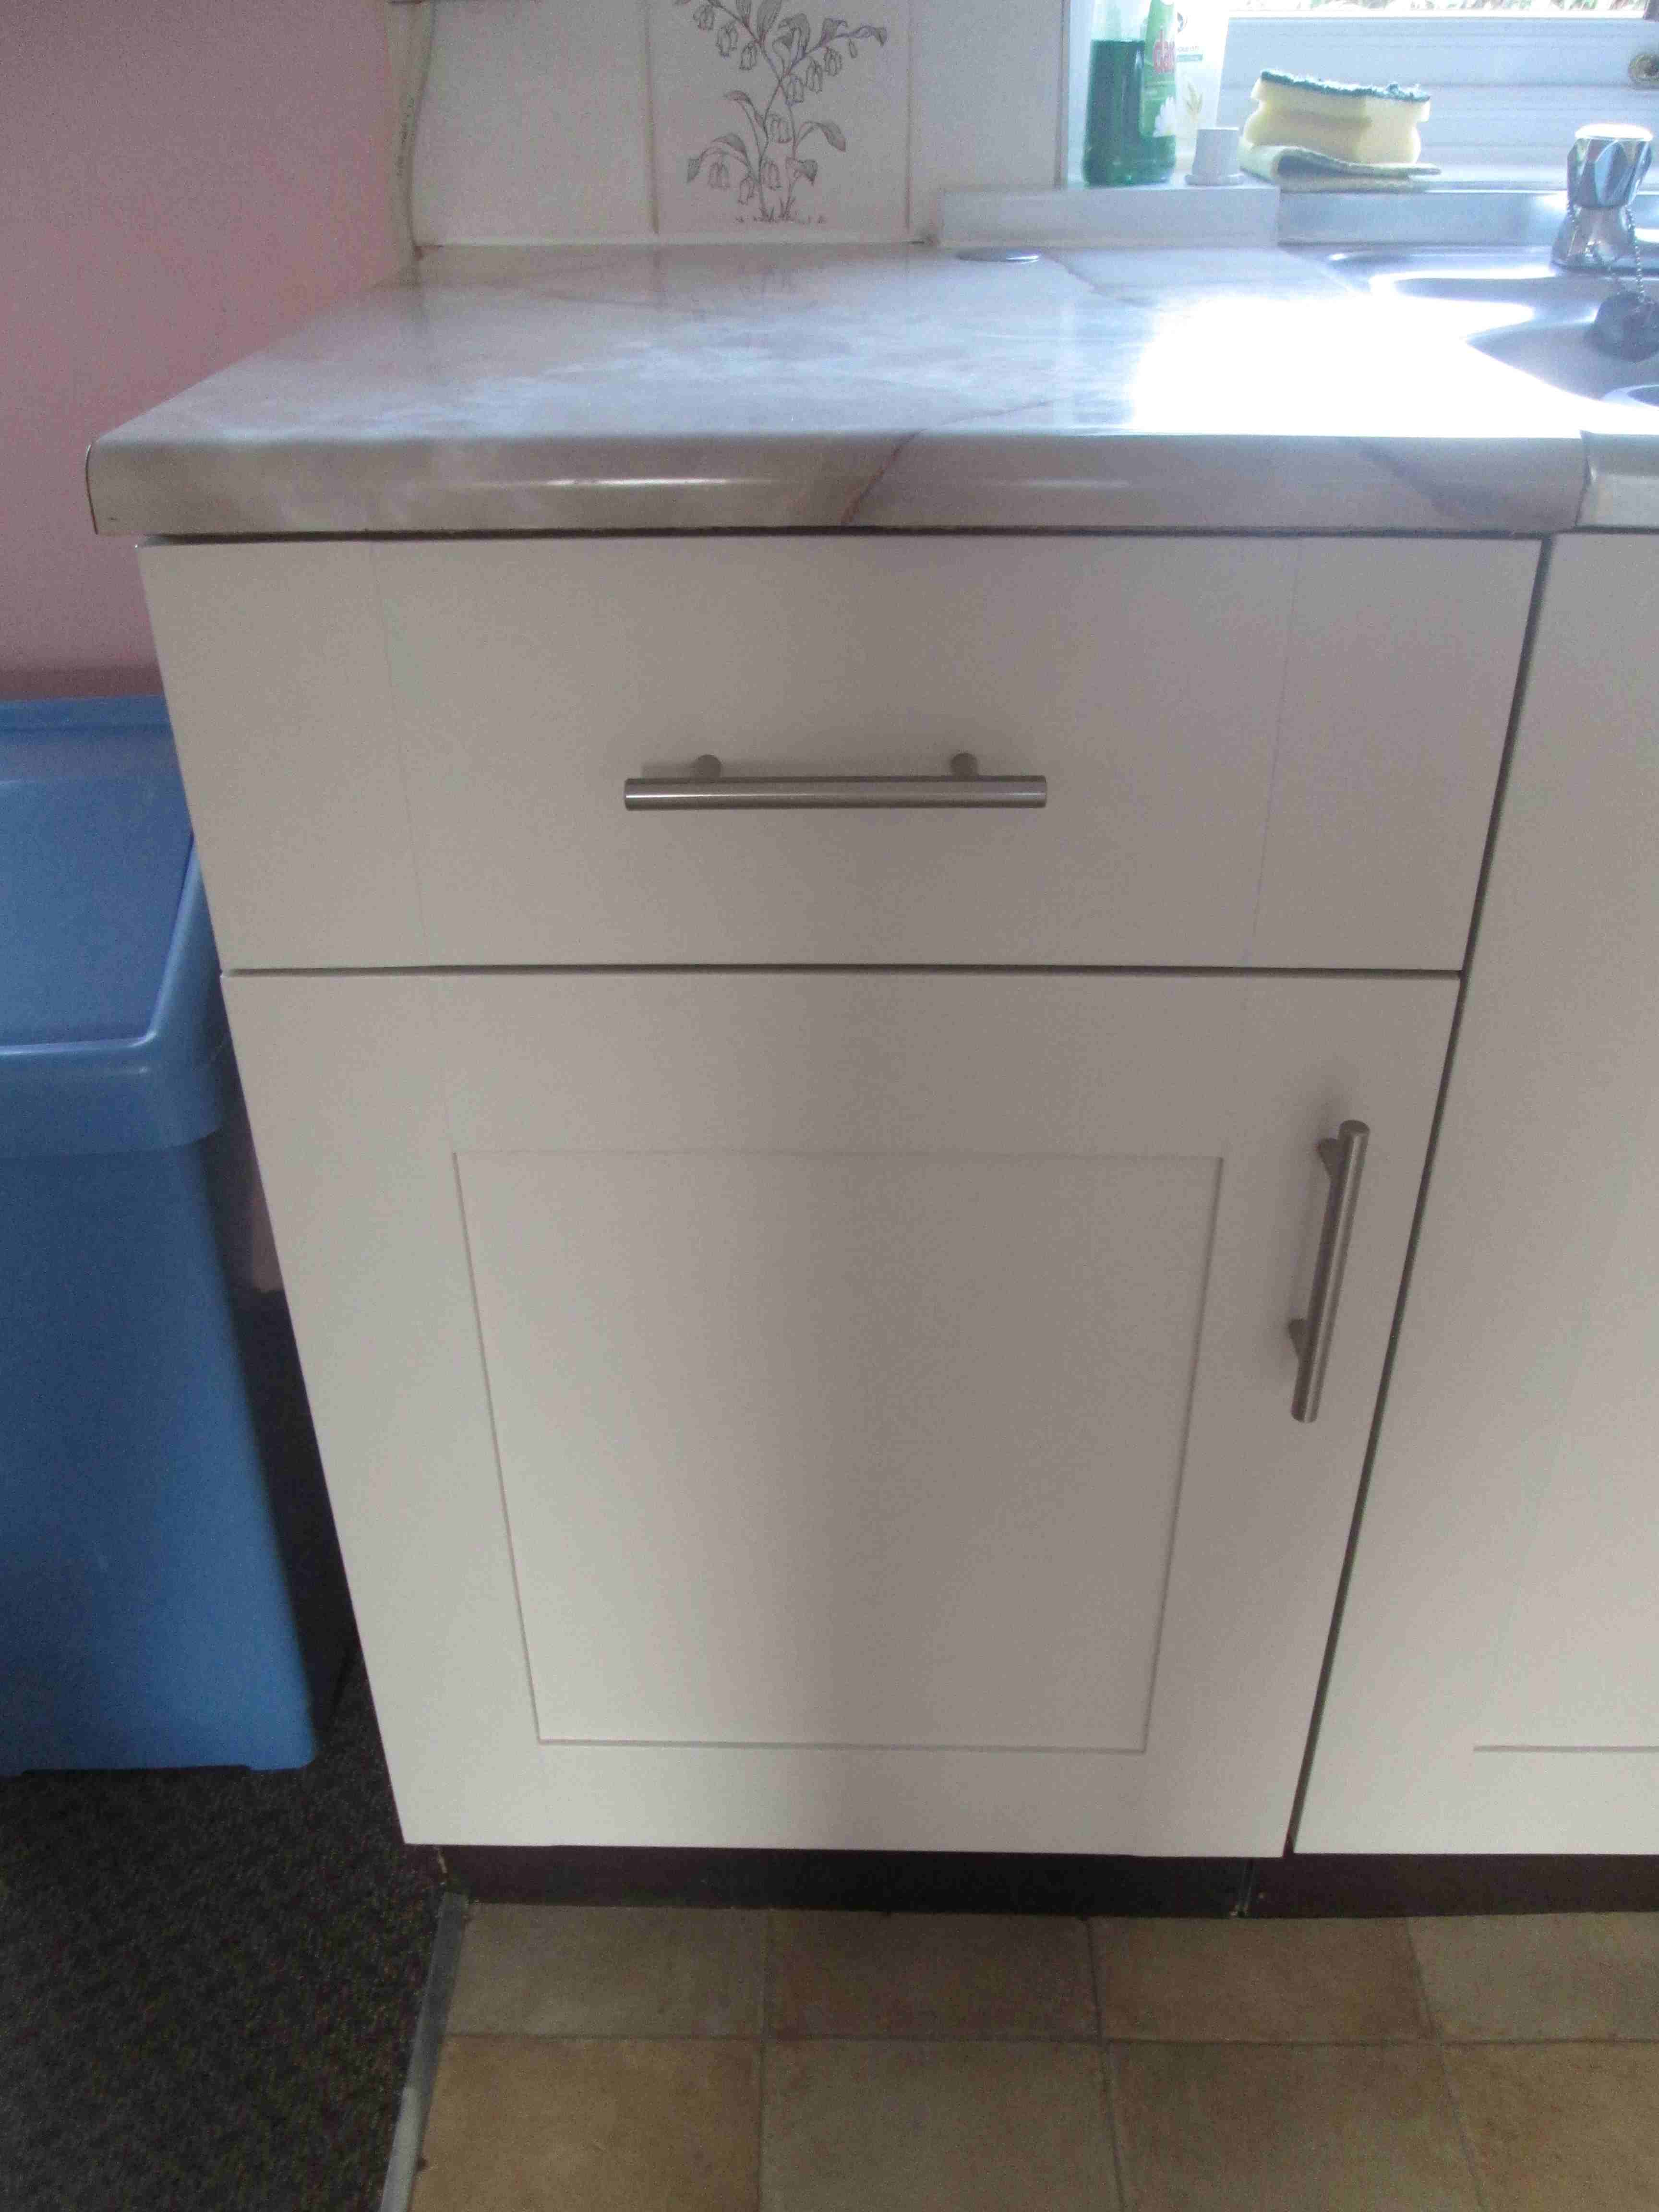 Kitchen drawer base units - Once We Owned The House We Took Out The Tall Larder Unit And Replaced It A 300mm Wide Base Unit The Only Base Unit In The Consignment And Widened The